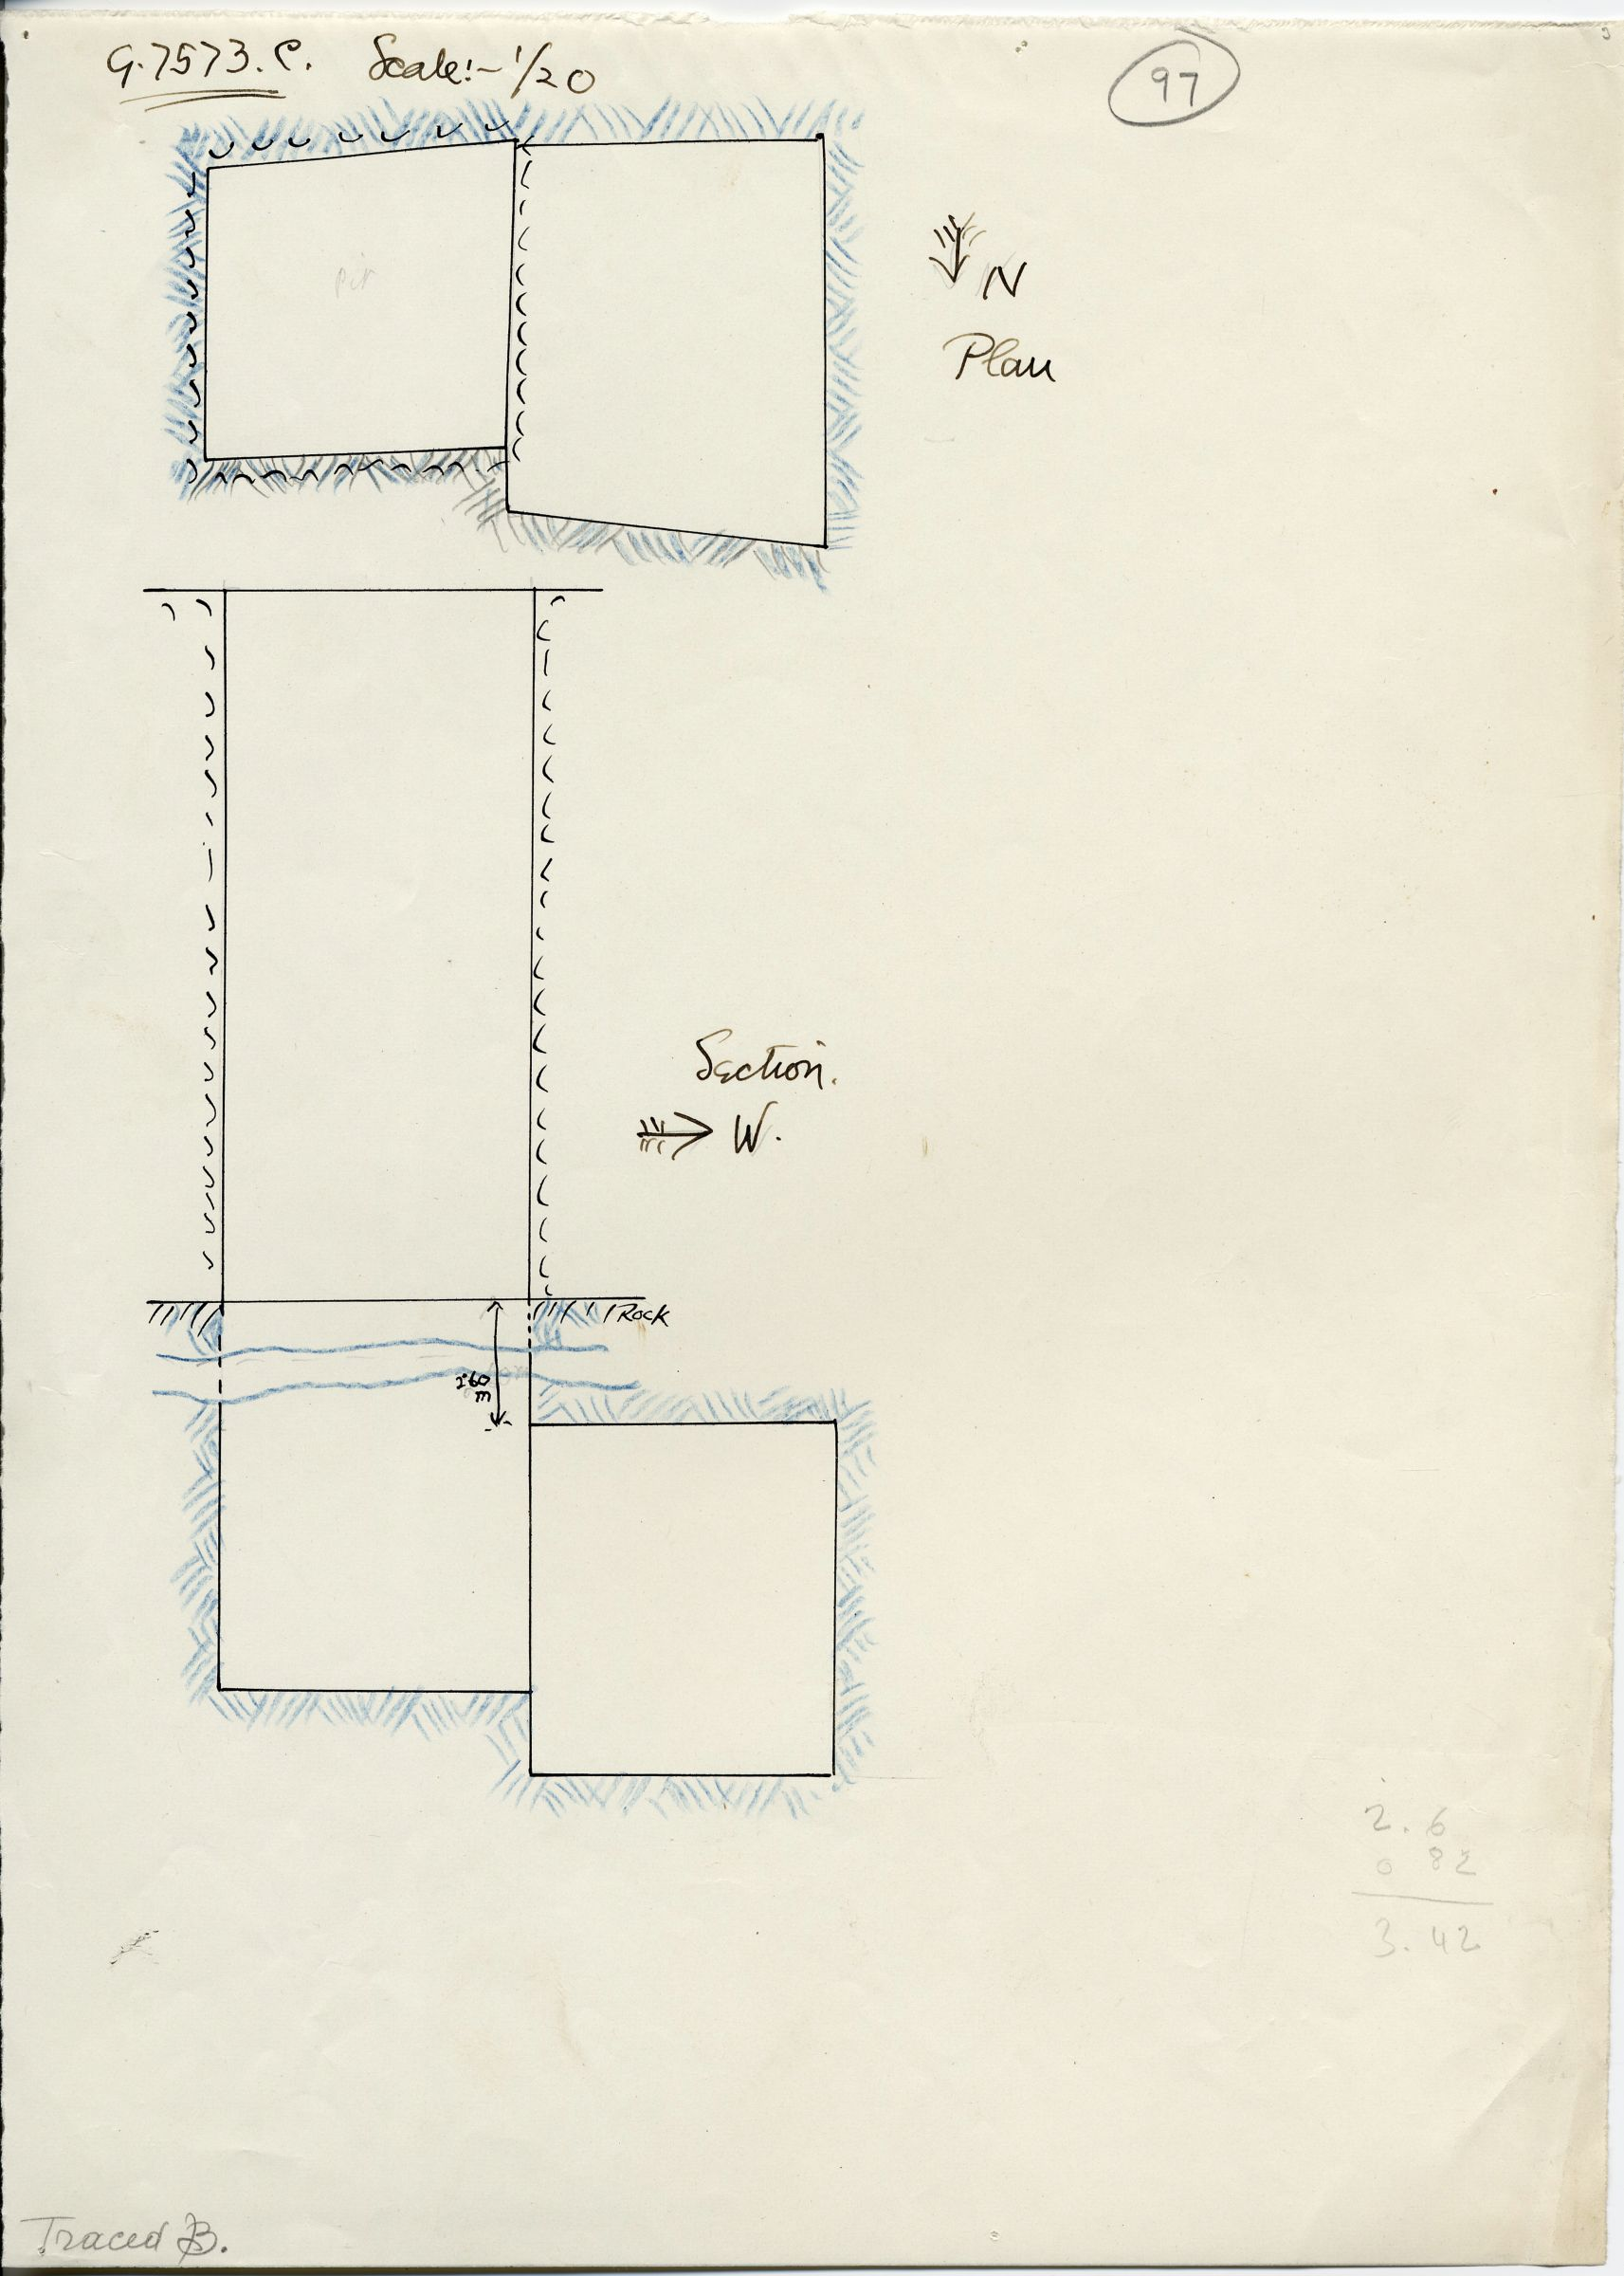 Maps and plans: G 7573, Shaft C